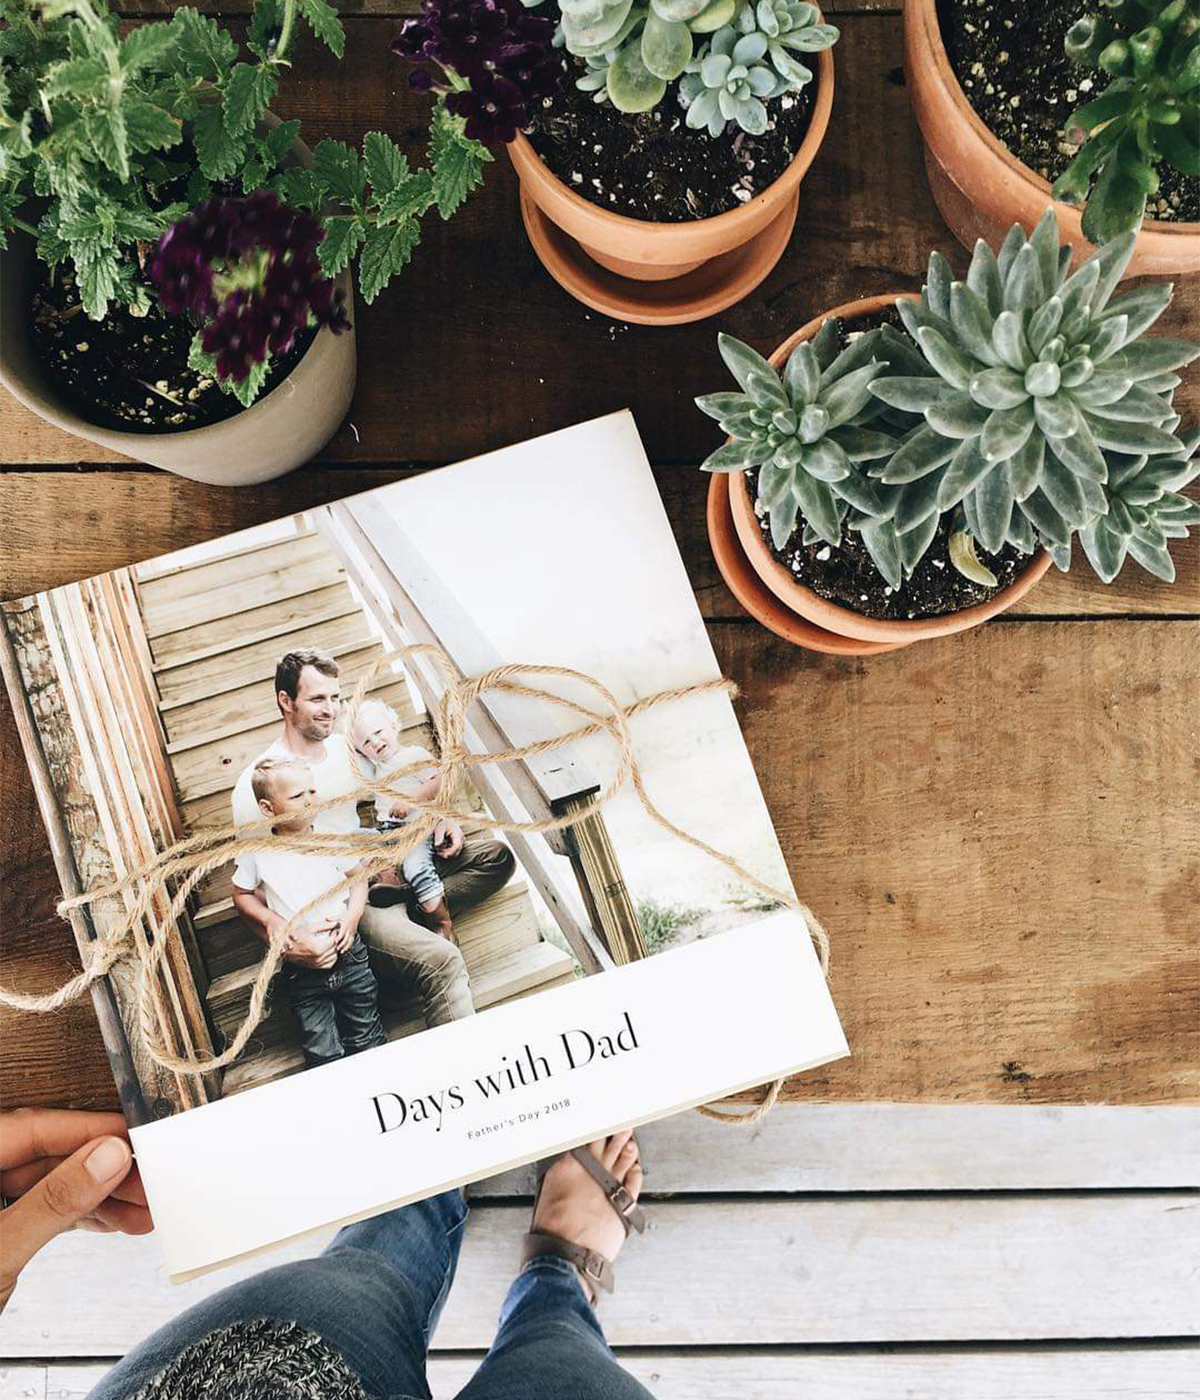 Hardcover Photo Book titled days with dad on table next to succulents